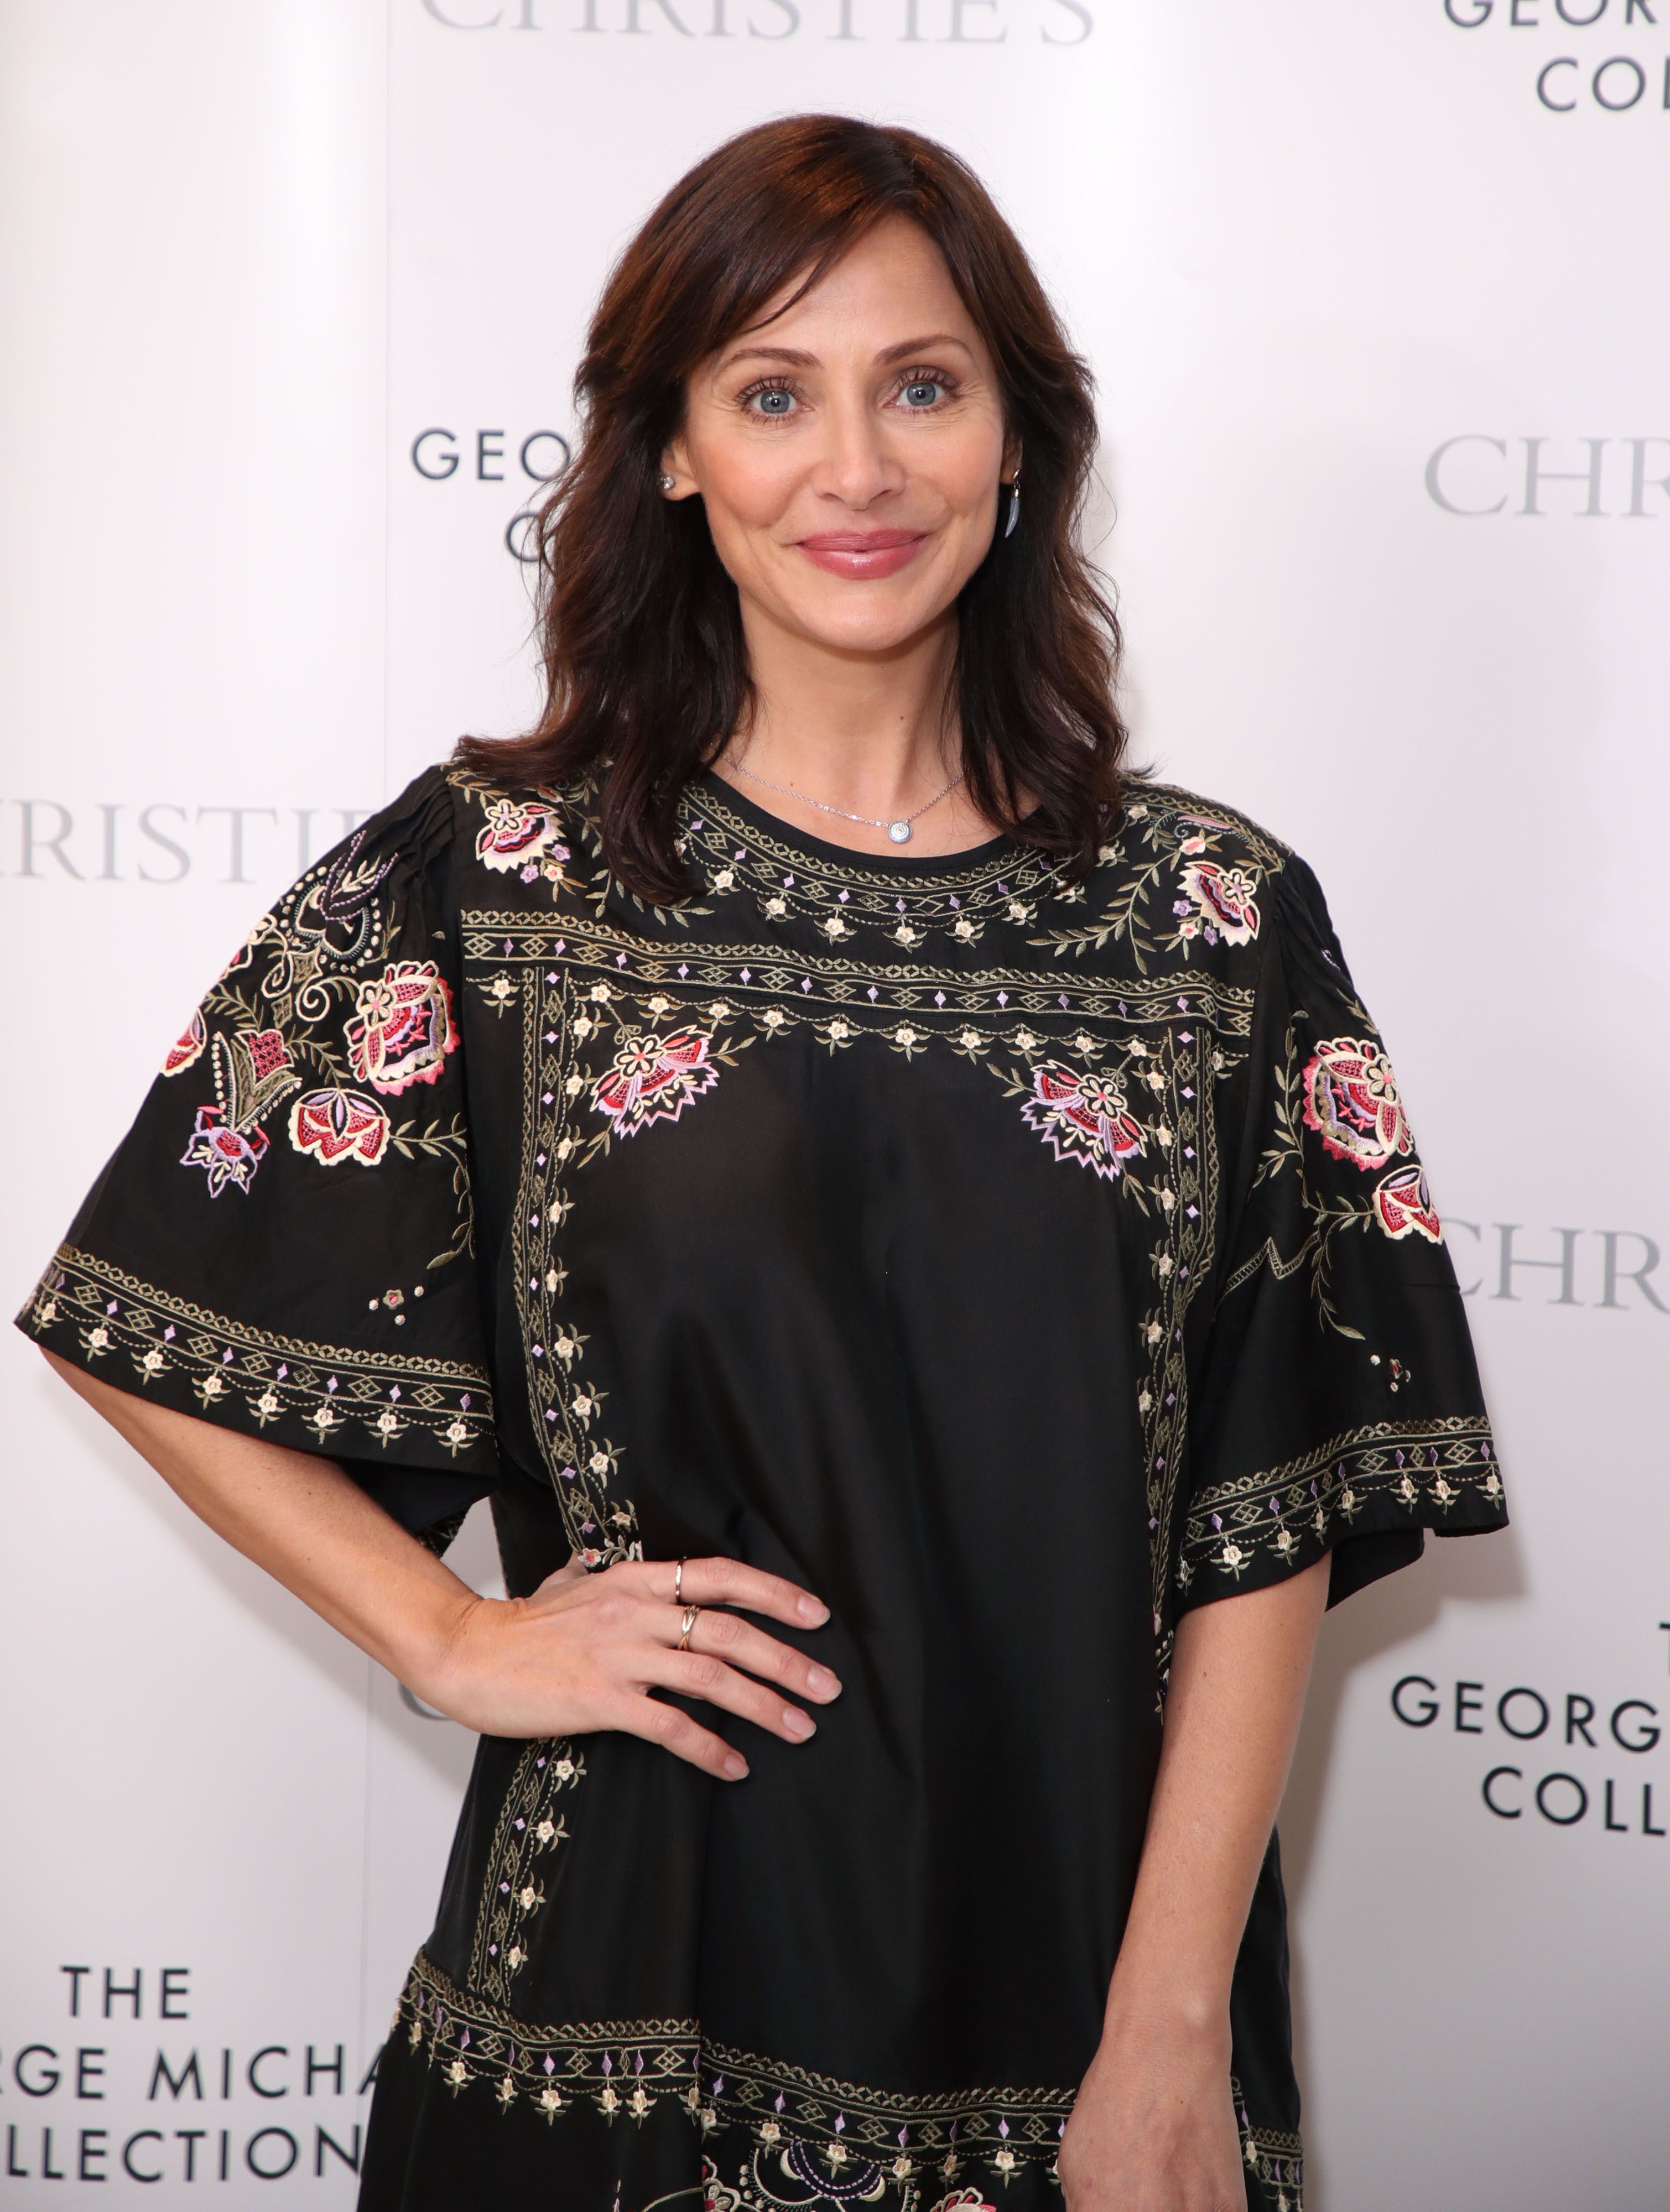 Singer Natalie Imbruglia announces record real and pregnancy